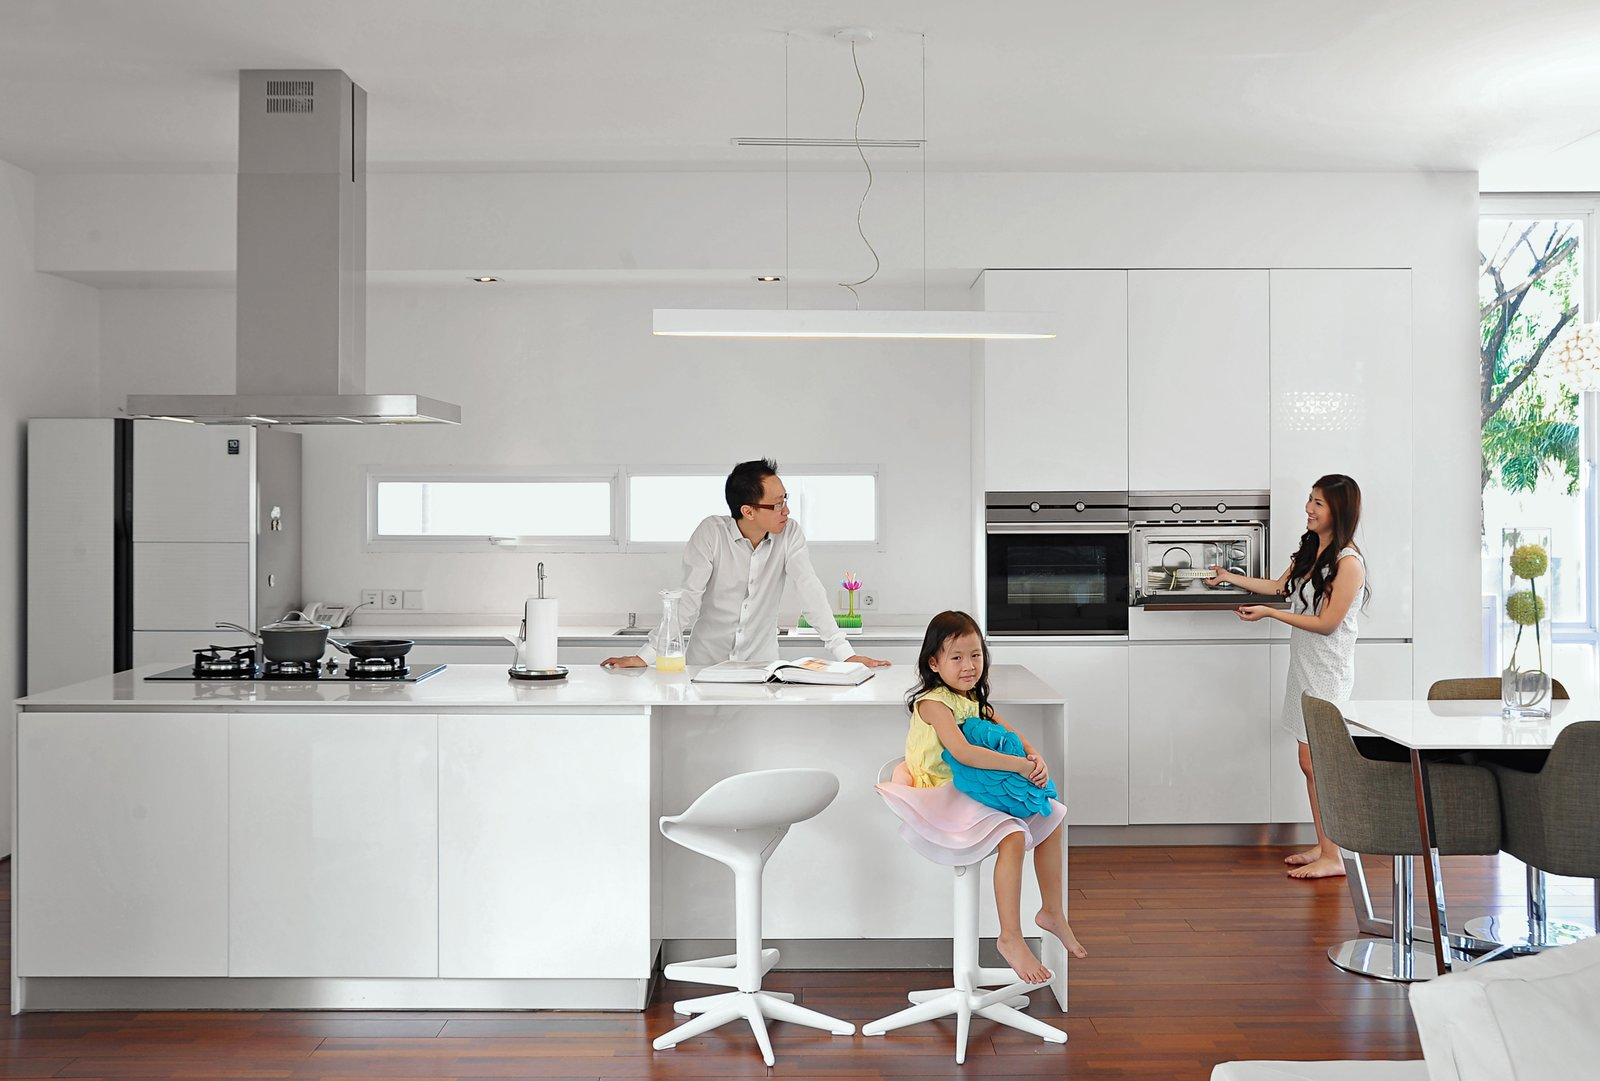 For the kitchen, he selected an oven, hood, and cooktop from Teka and a Samsung refrigerator. The table is his own design and the bar stools and chairs are from Informa.